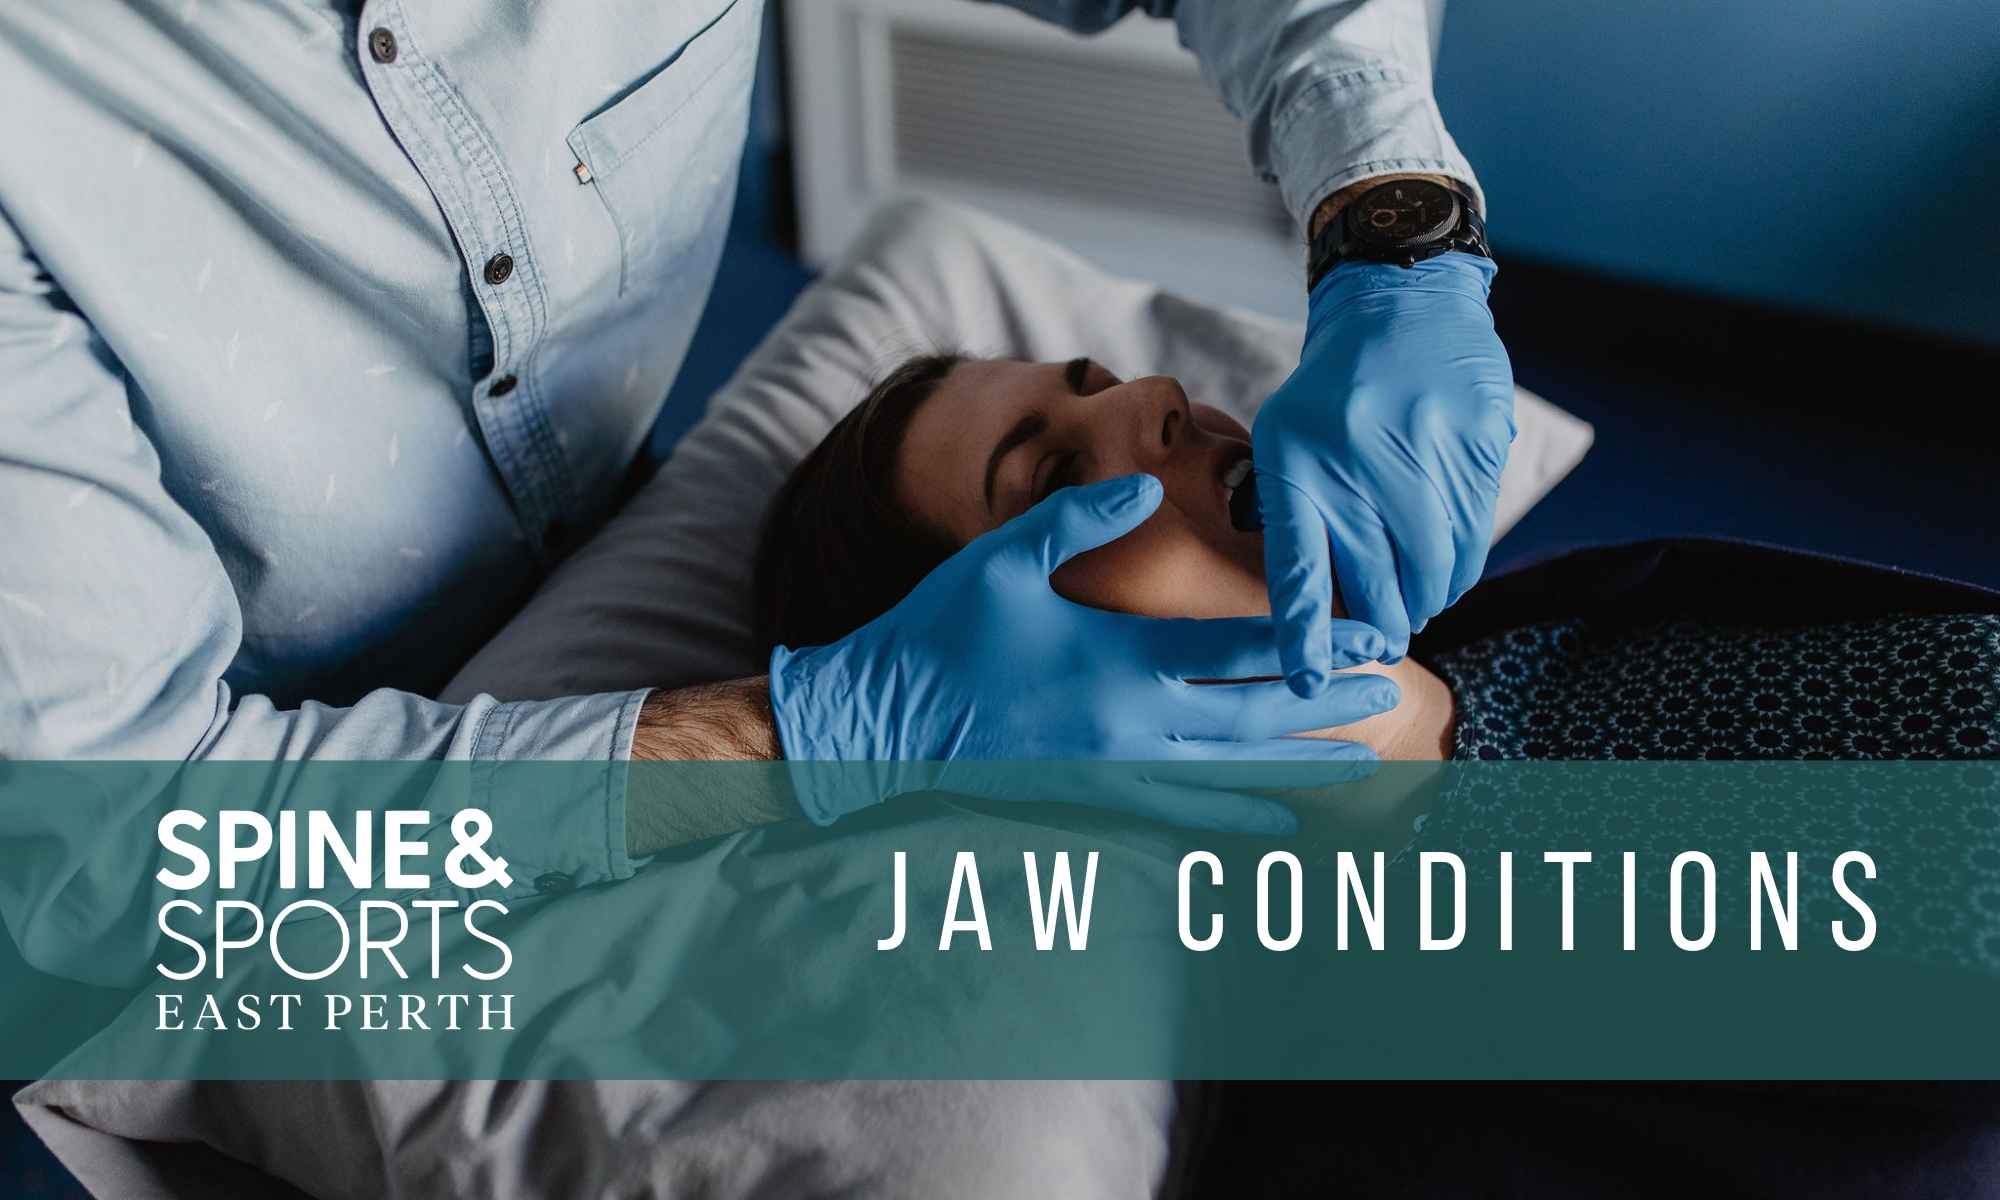 East Perth Jaw conditions at Spine & Sports Centre.jpg